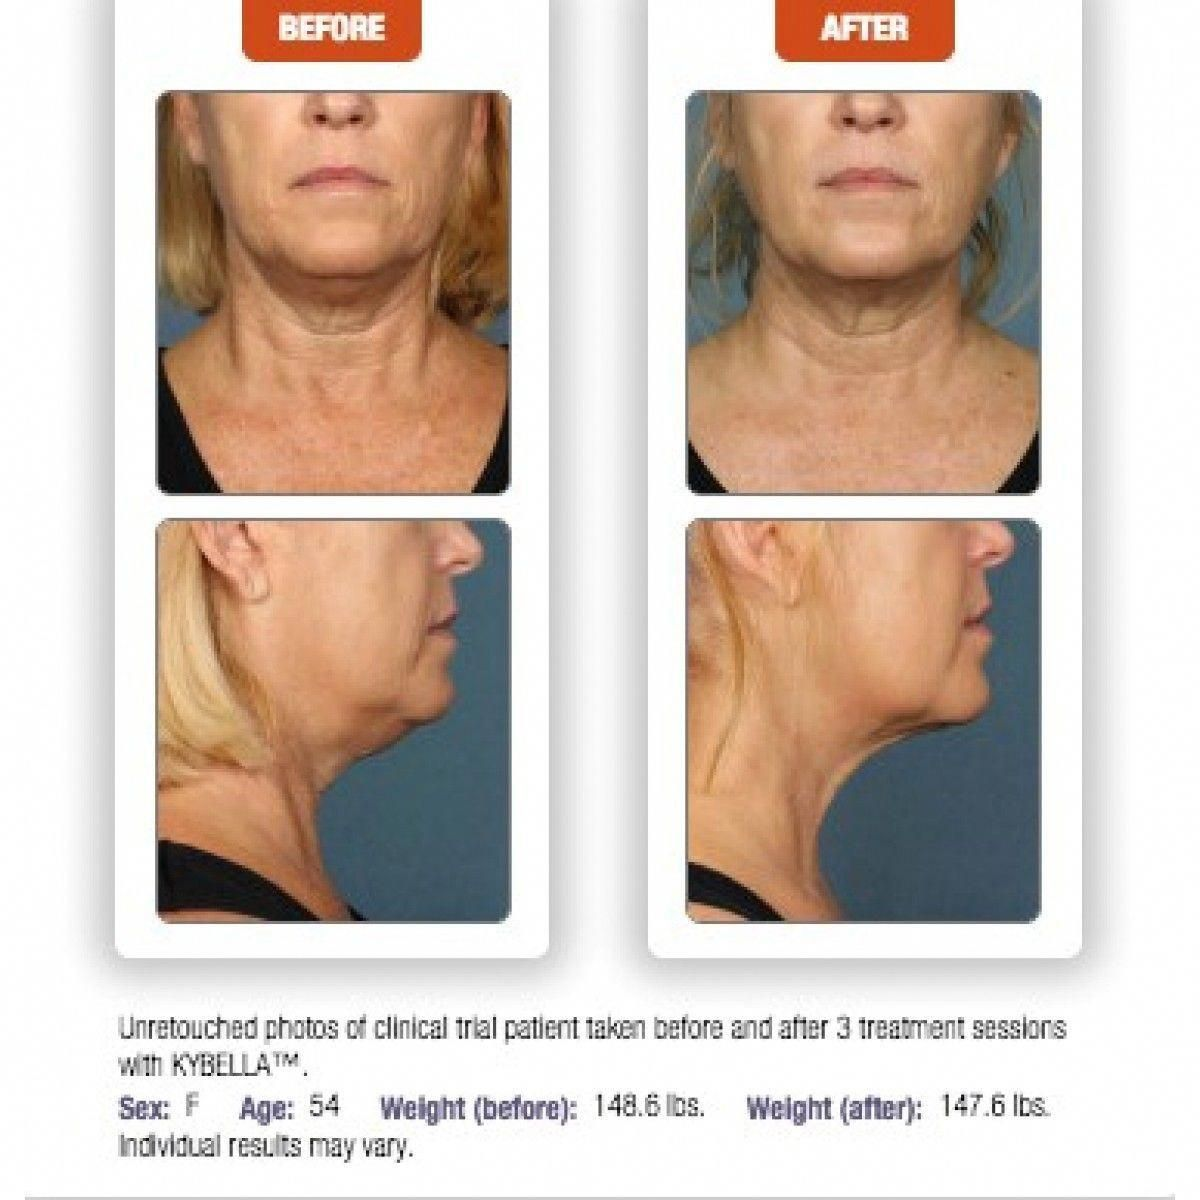 kybella before and after pics tattooremovalbeforeandafter